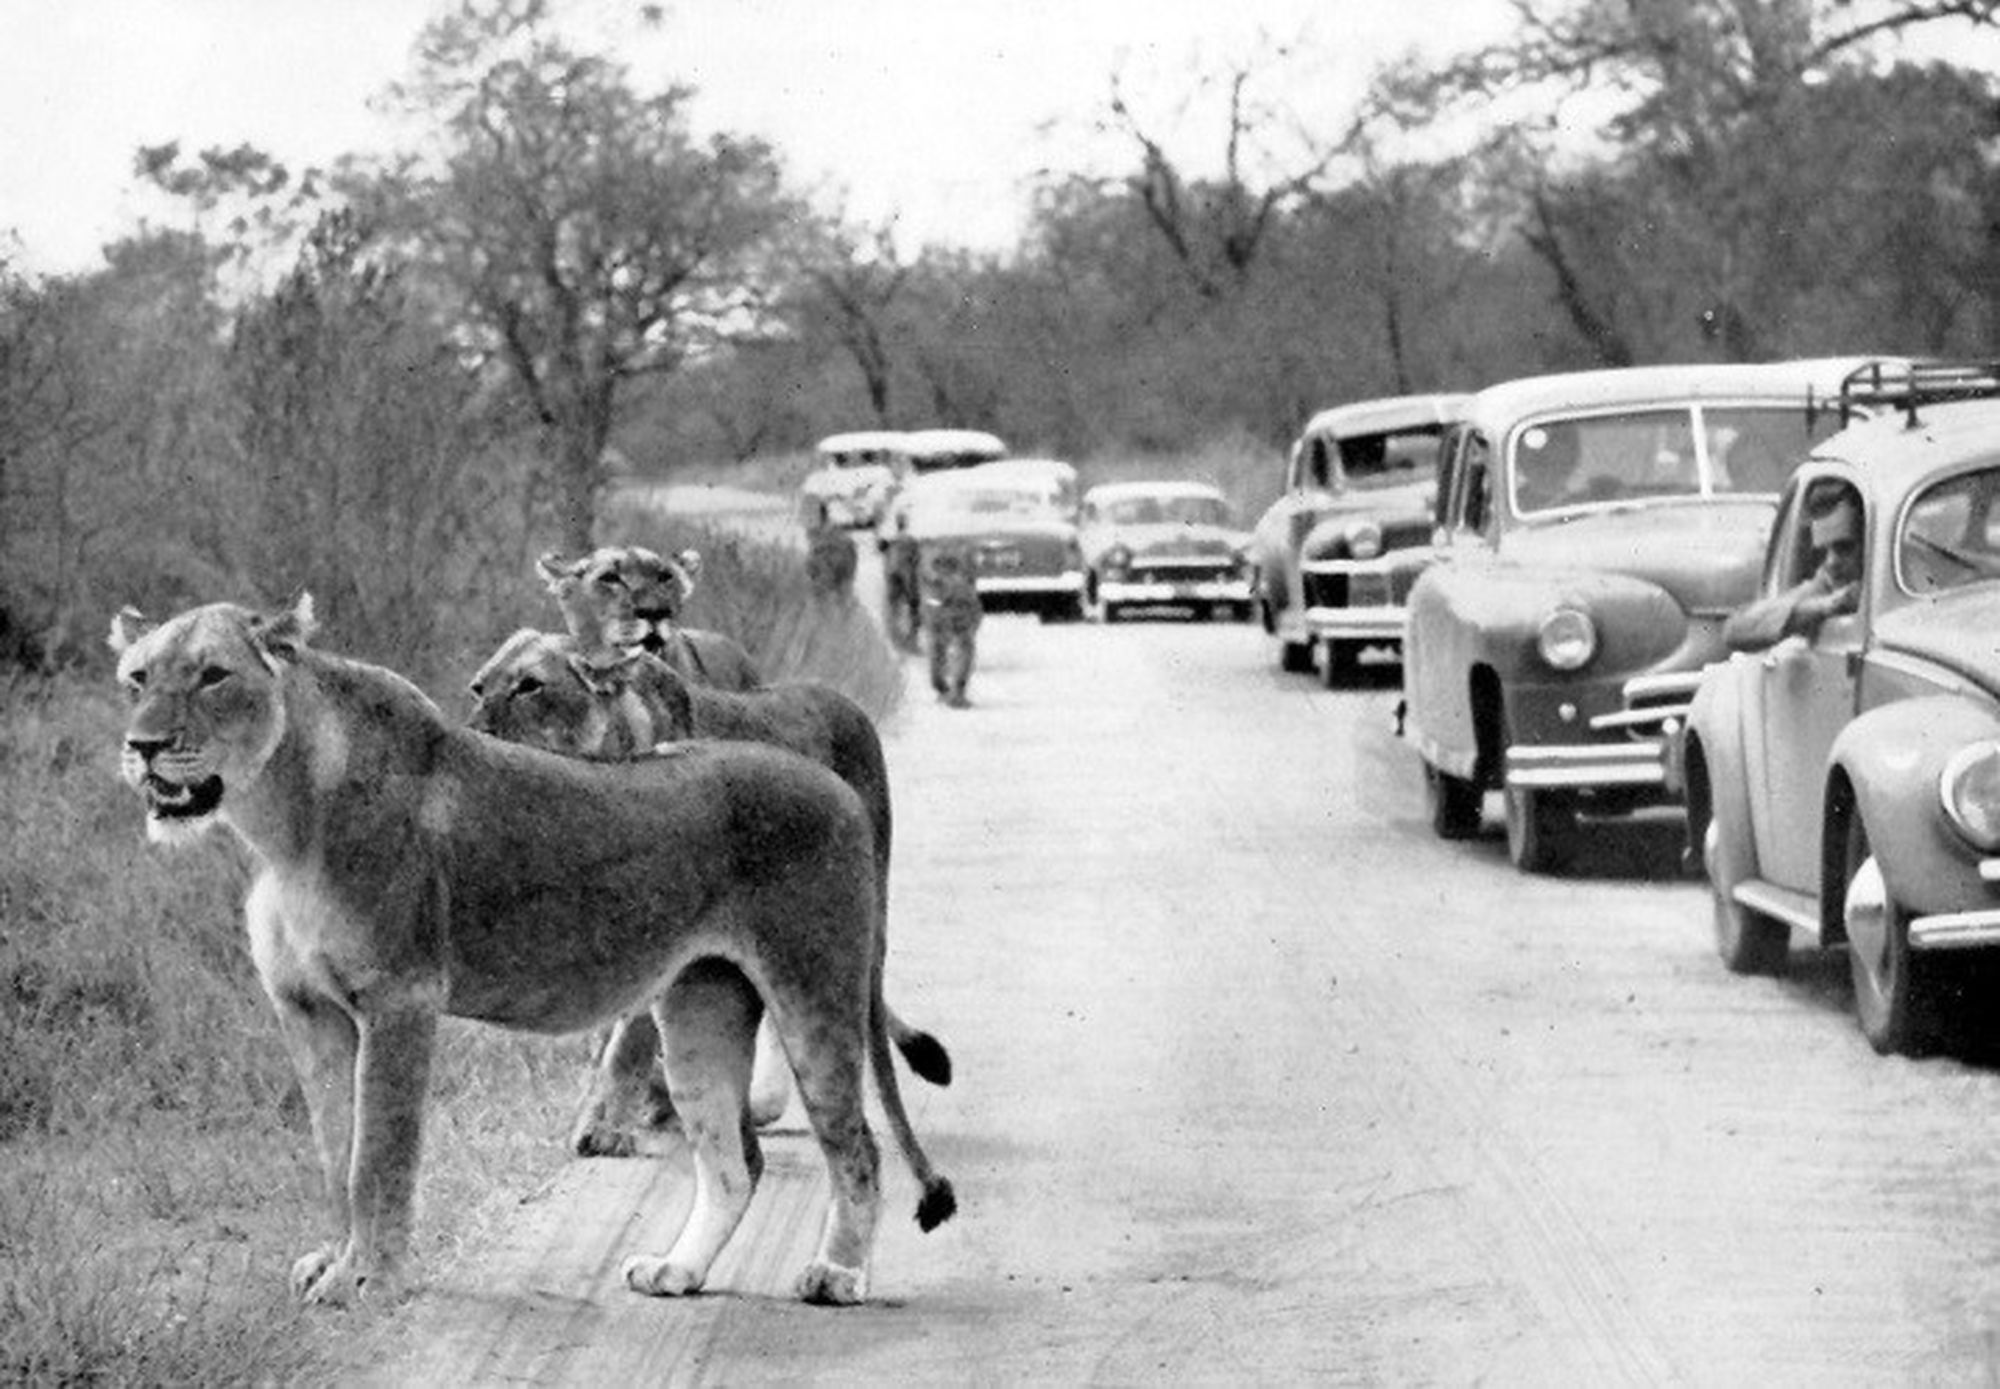 Lions in the kruger park in the 1950s